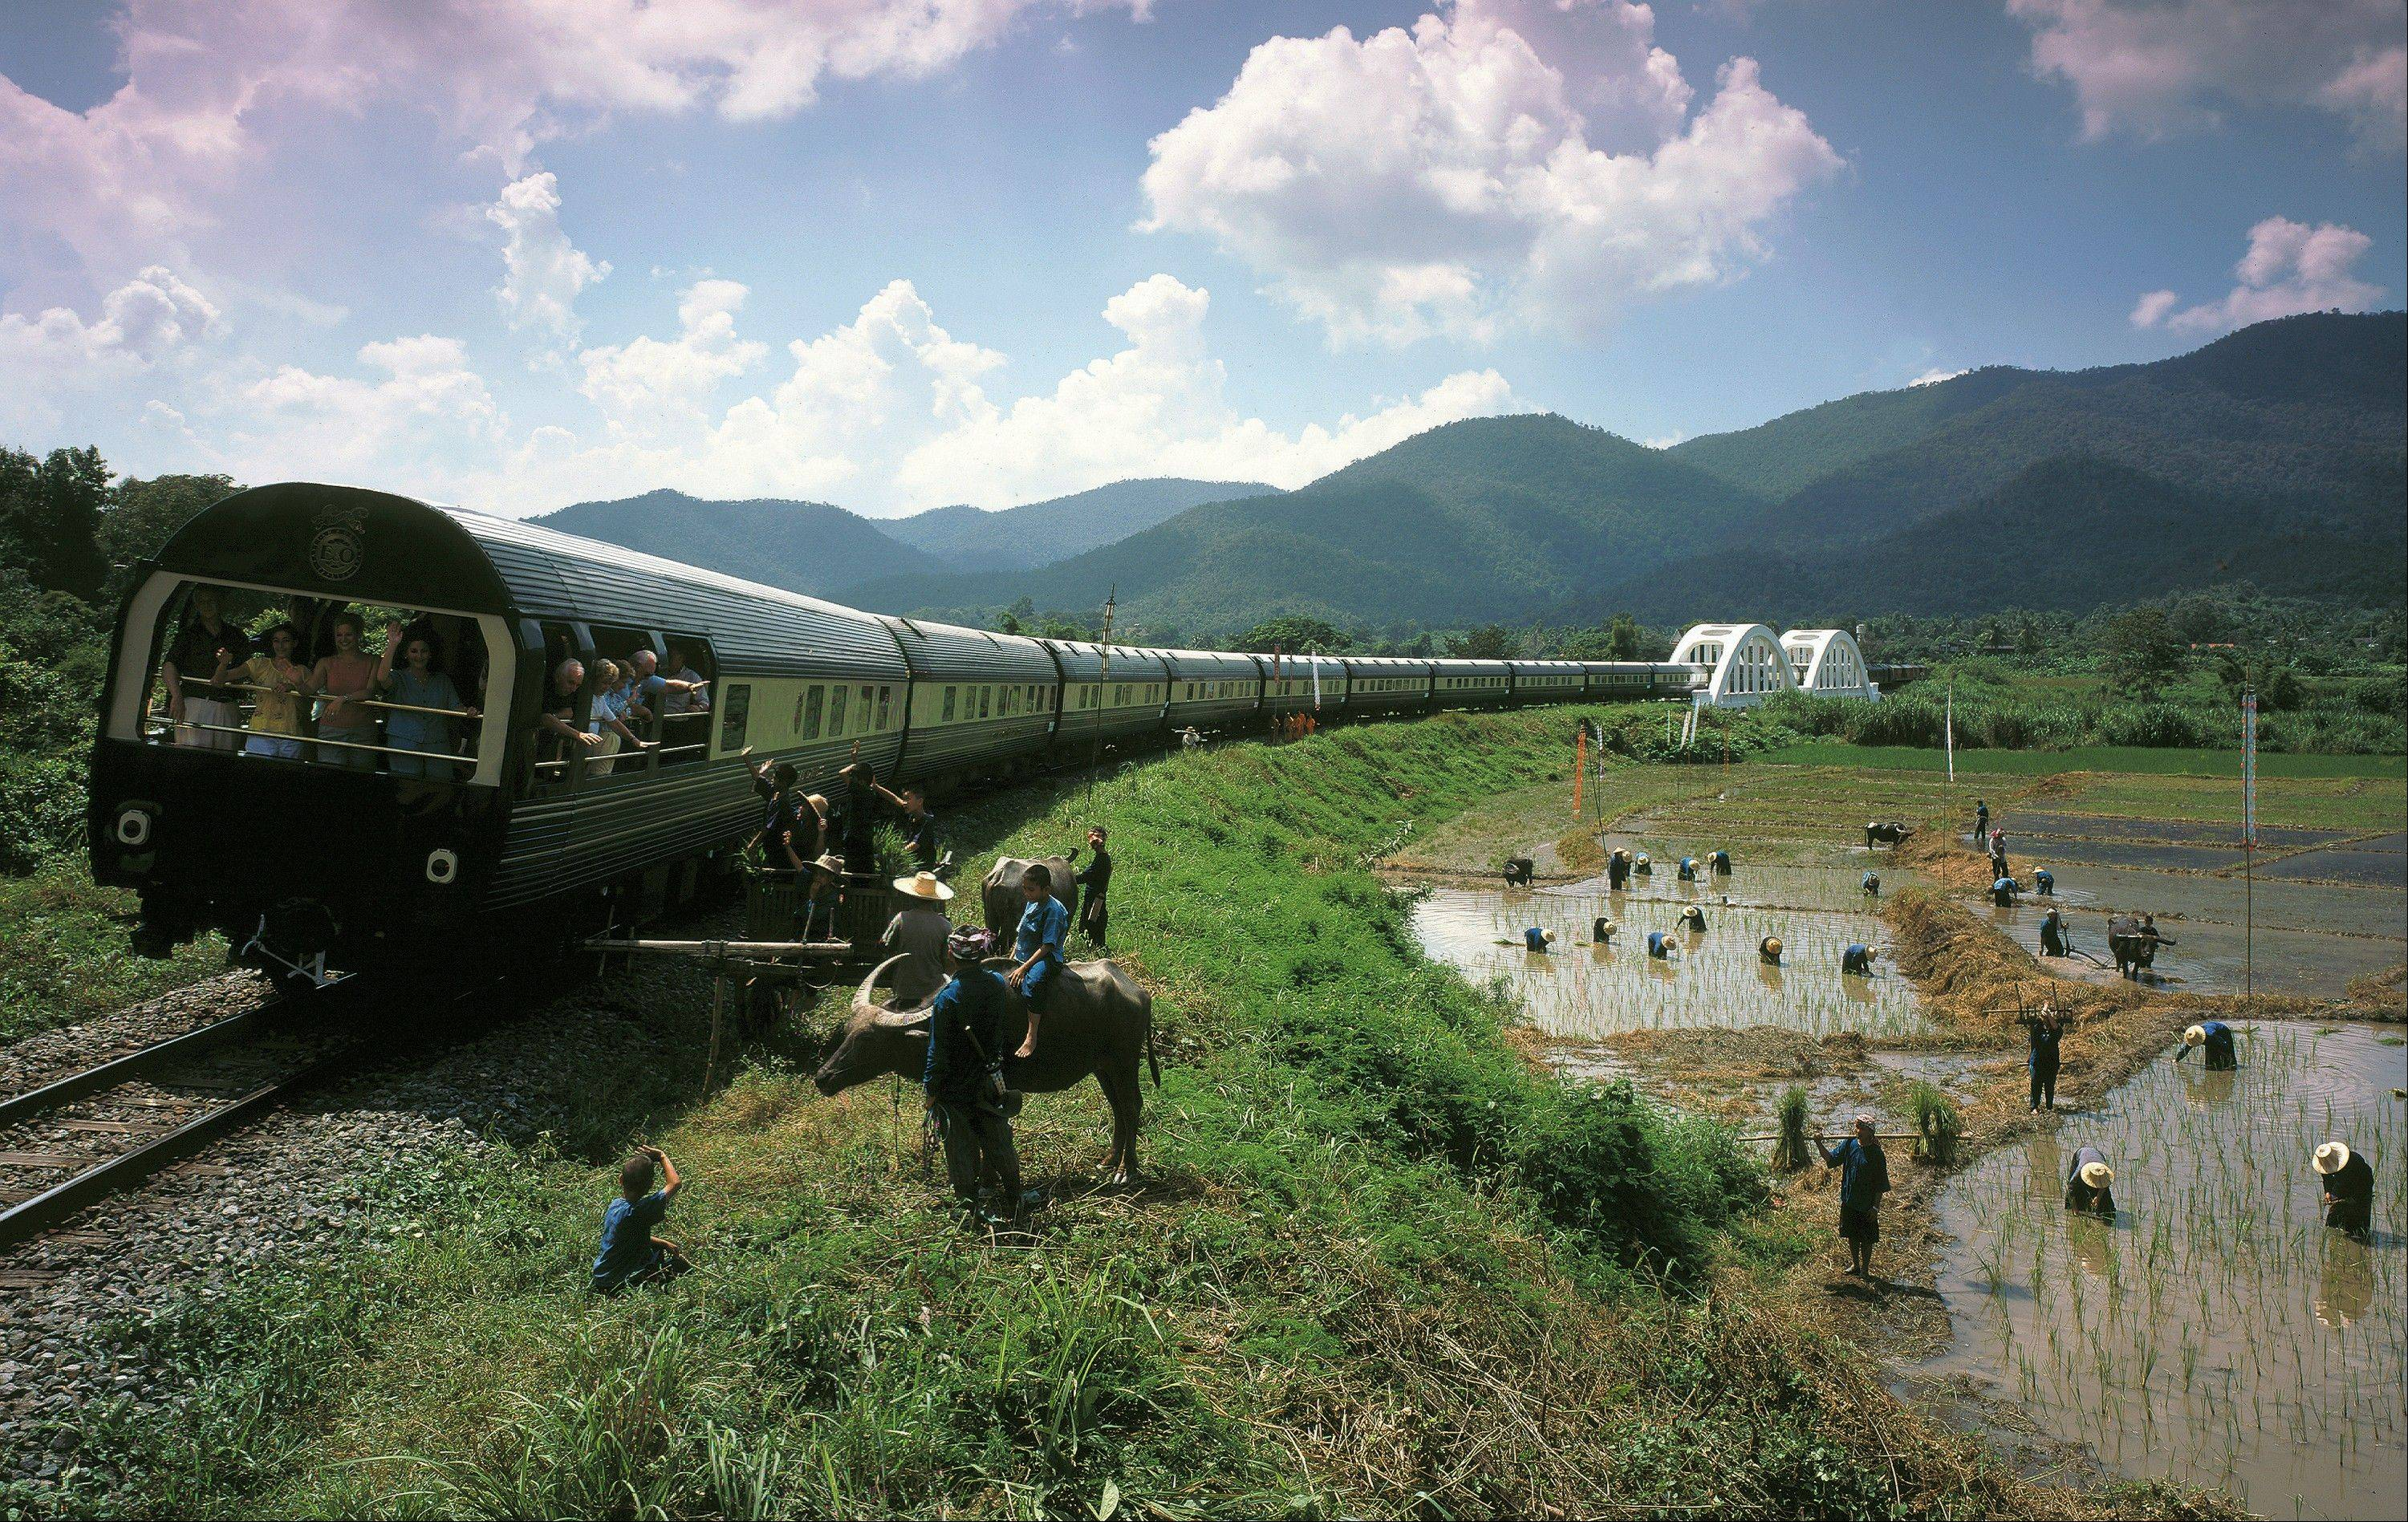 An Eastern & Oriental train crosses the Tha Chompu Bridge near Chiang Mai in Thailand.